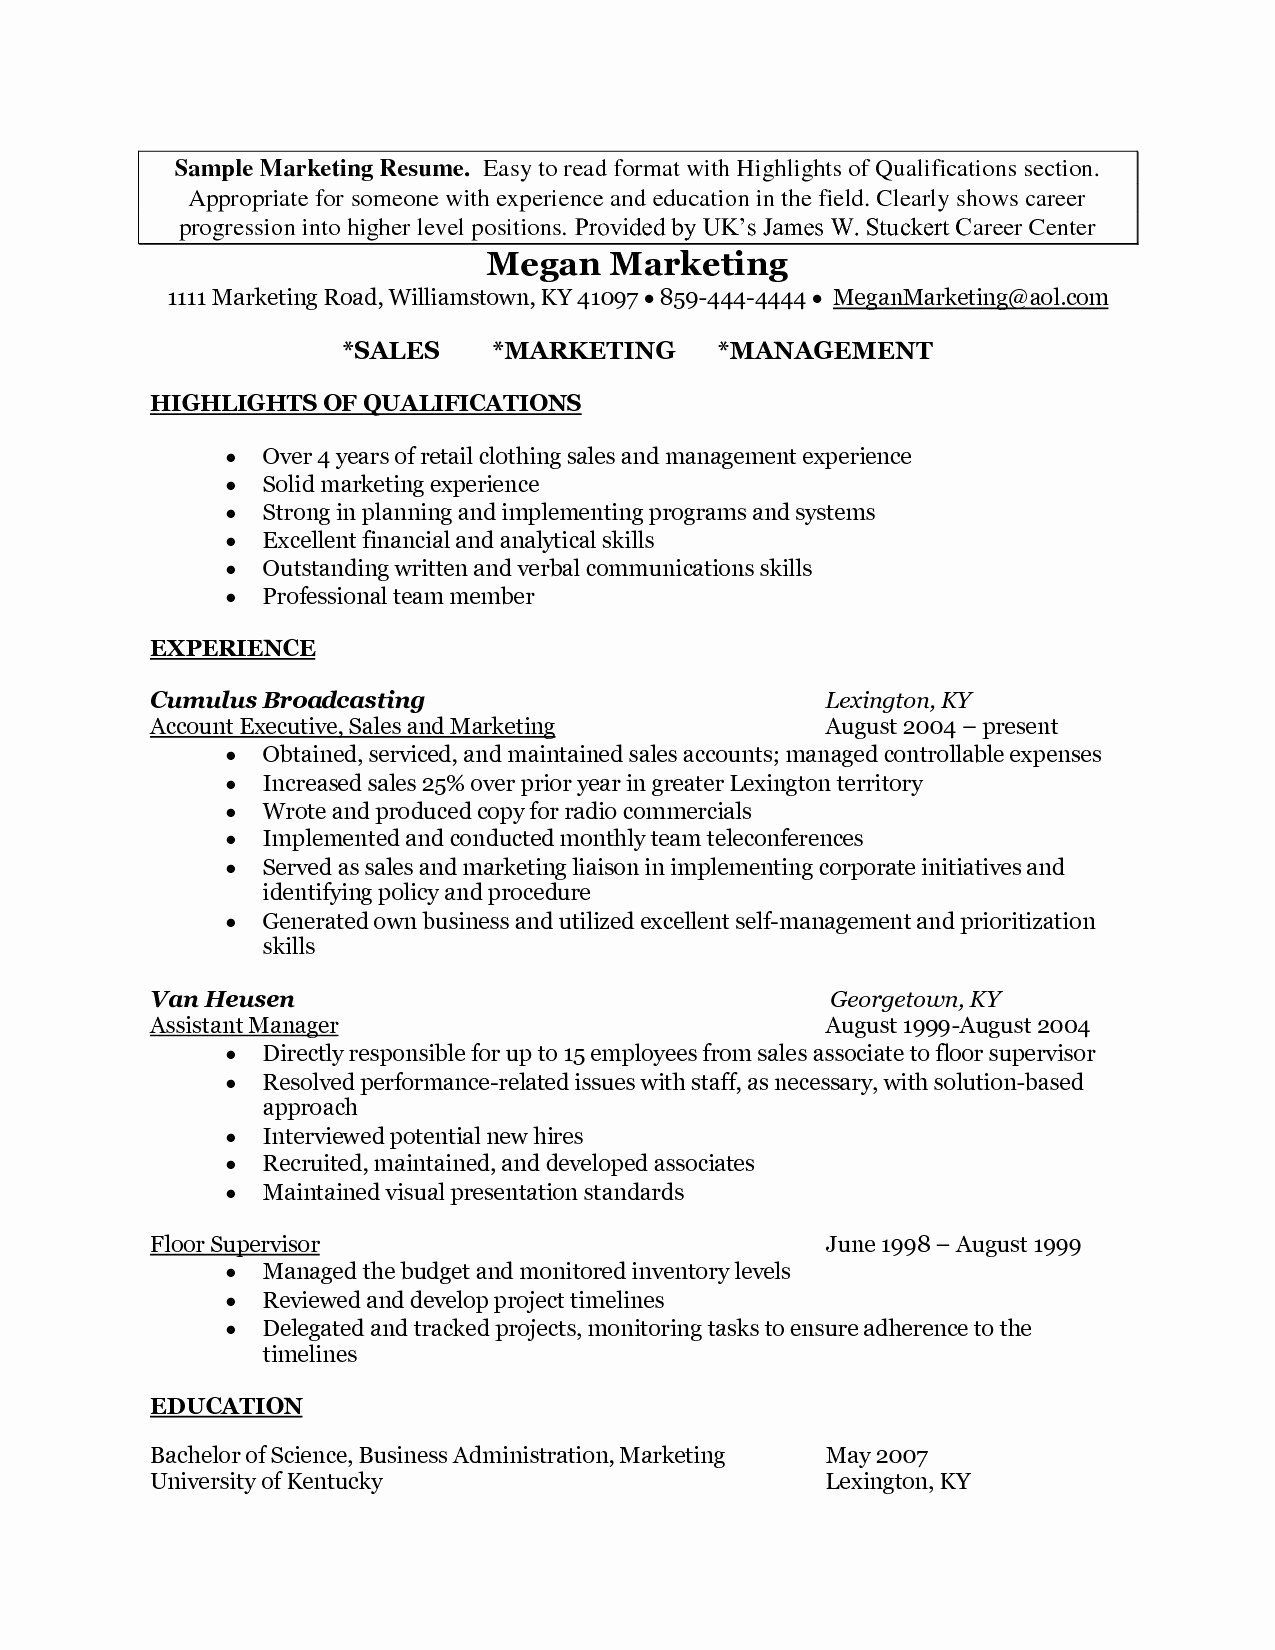 good luck new job unique basic cover letter sample financial advisor skills resume examples for engineering freshers cdl driver